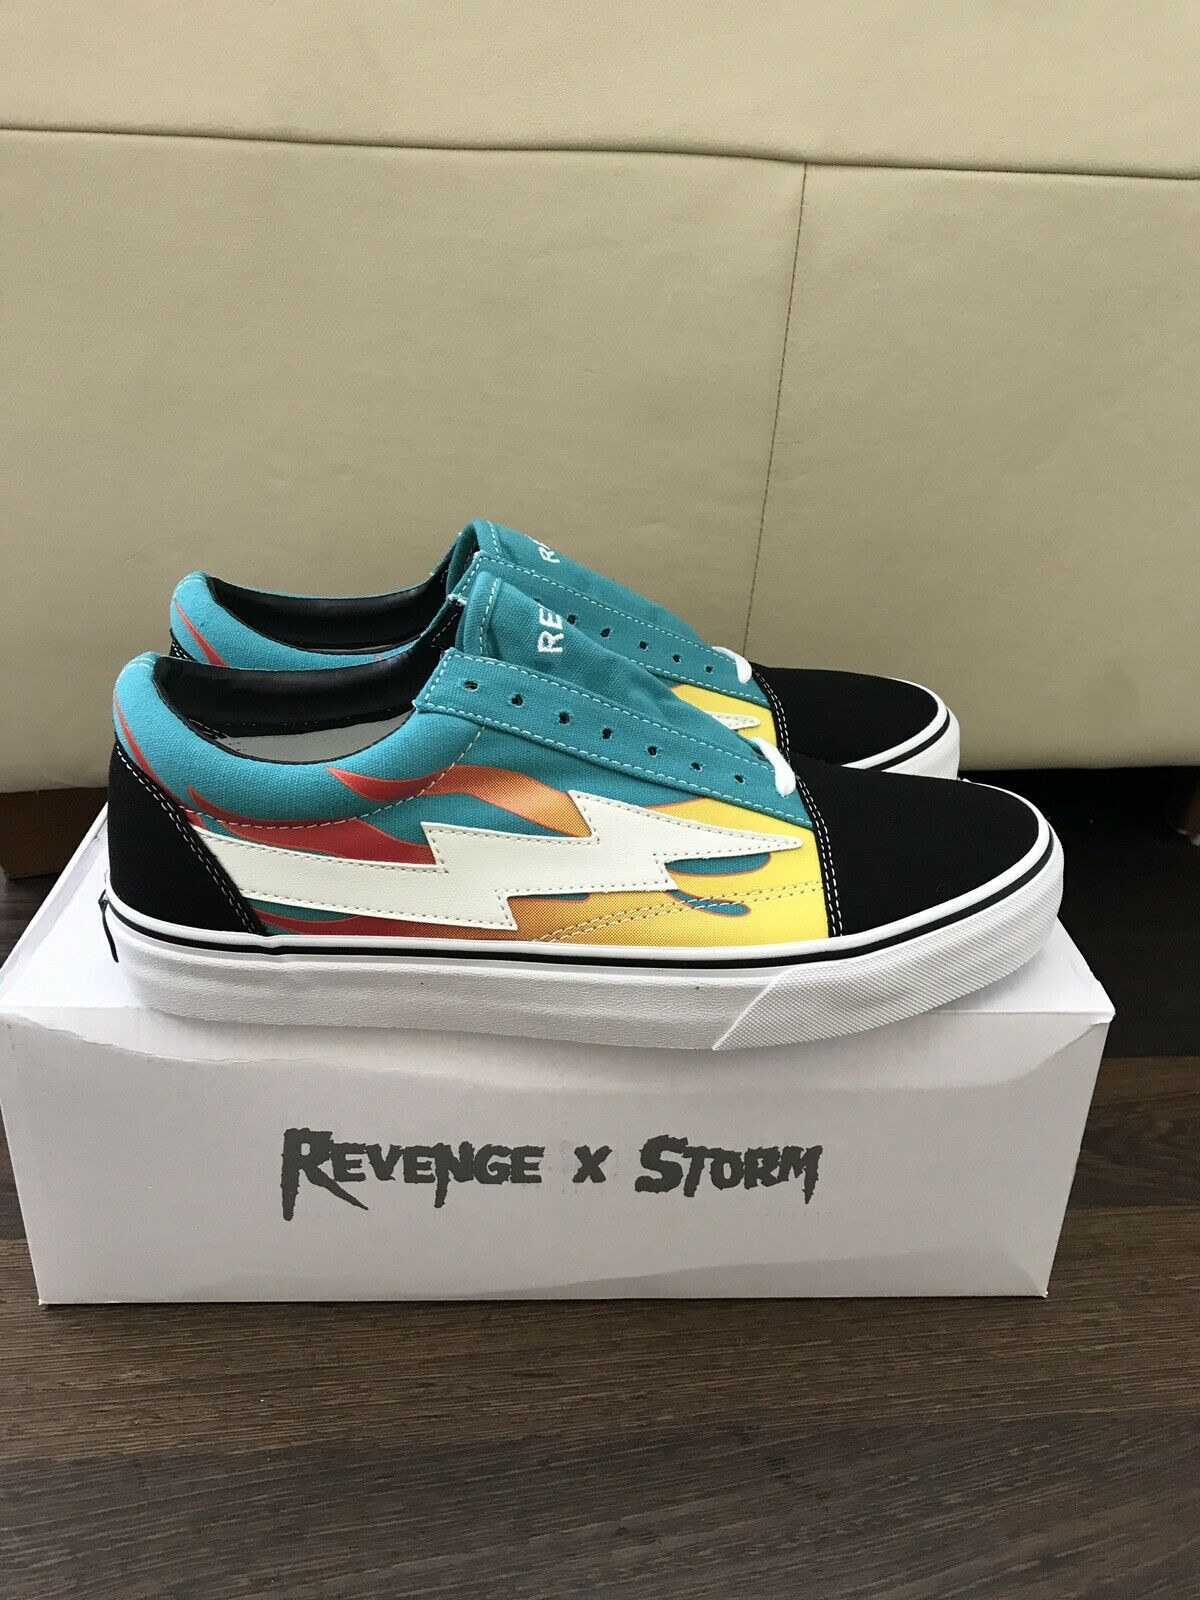 Revenge X STORM turquoise flammes taille 11